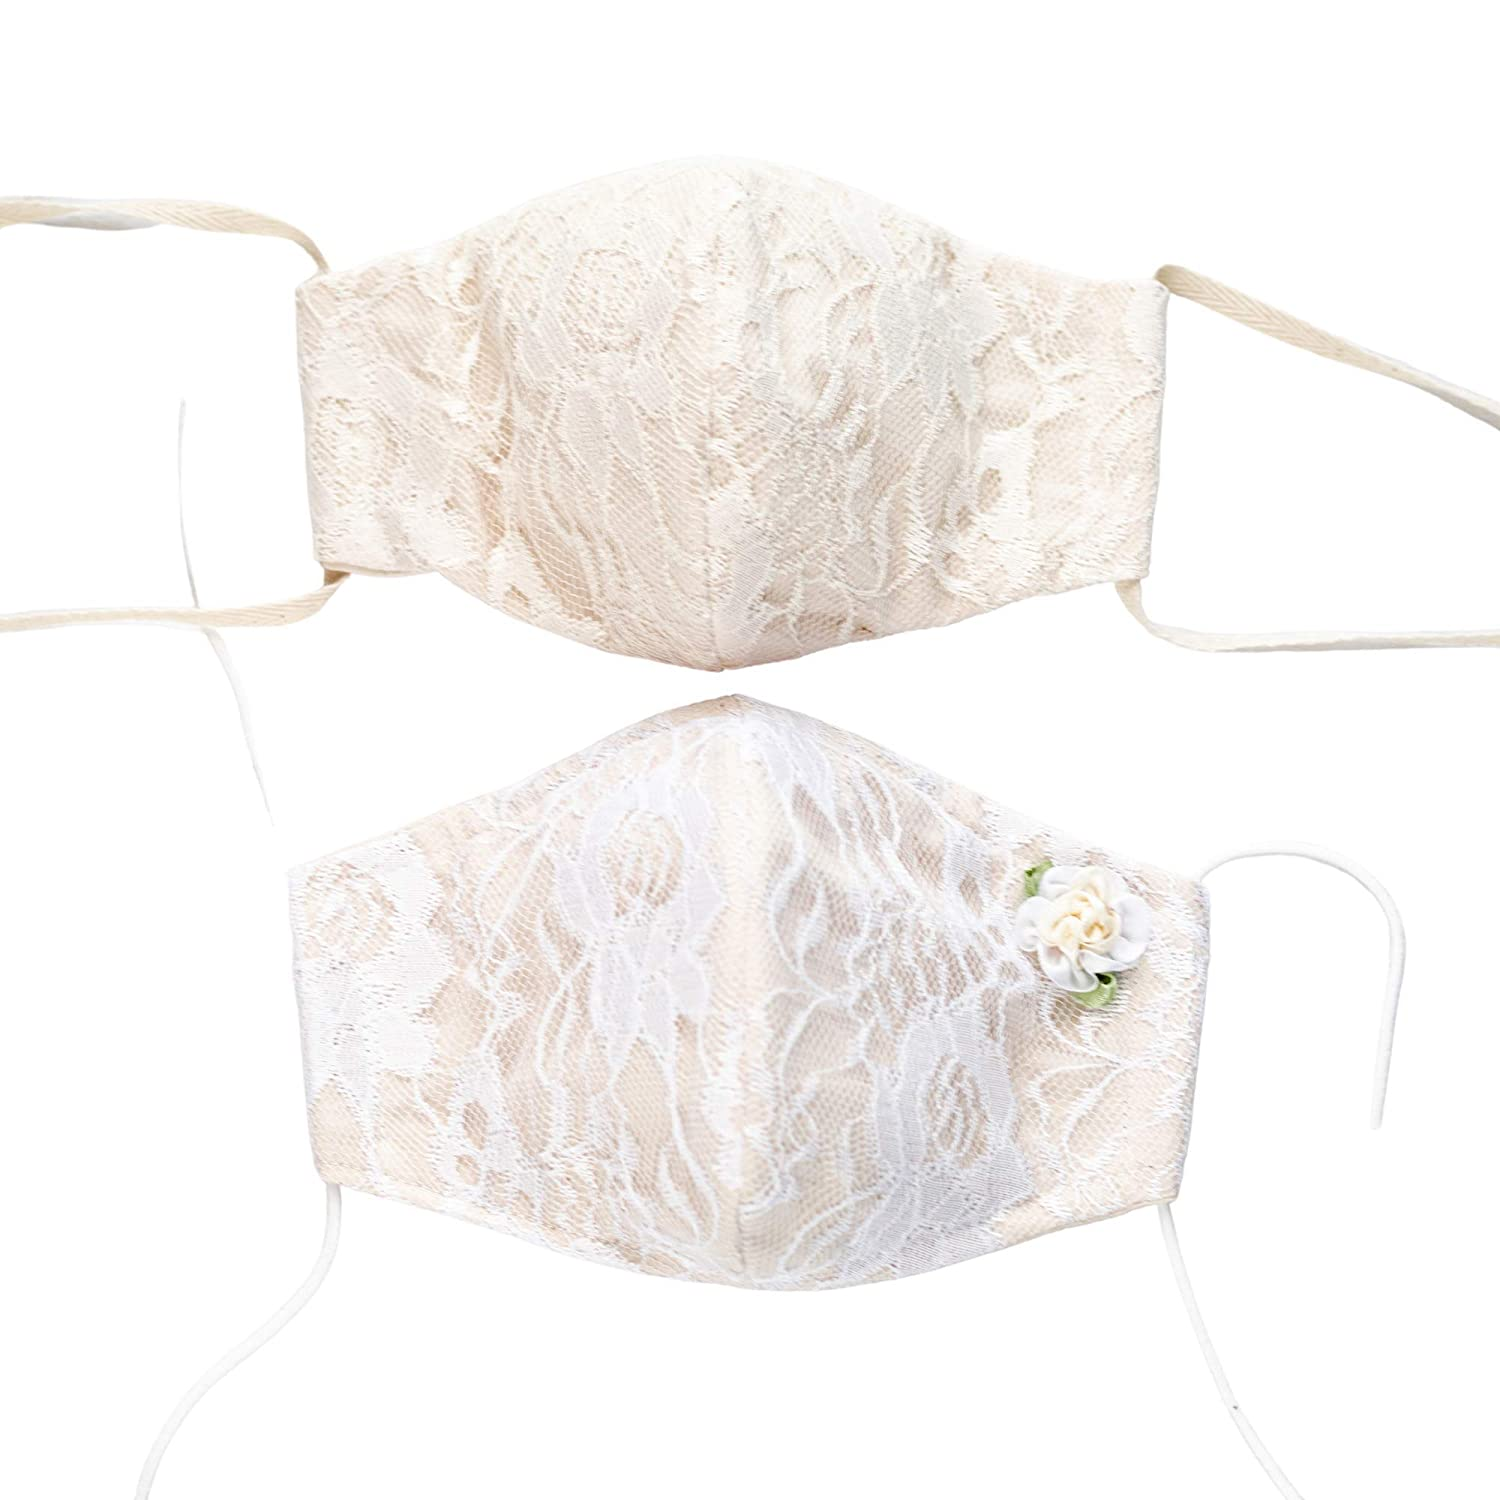 Raleigh Mall Lace shop Face Mask for Rustic Wedding O Ties - White or Elastic